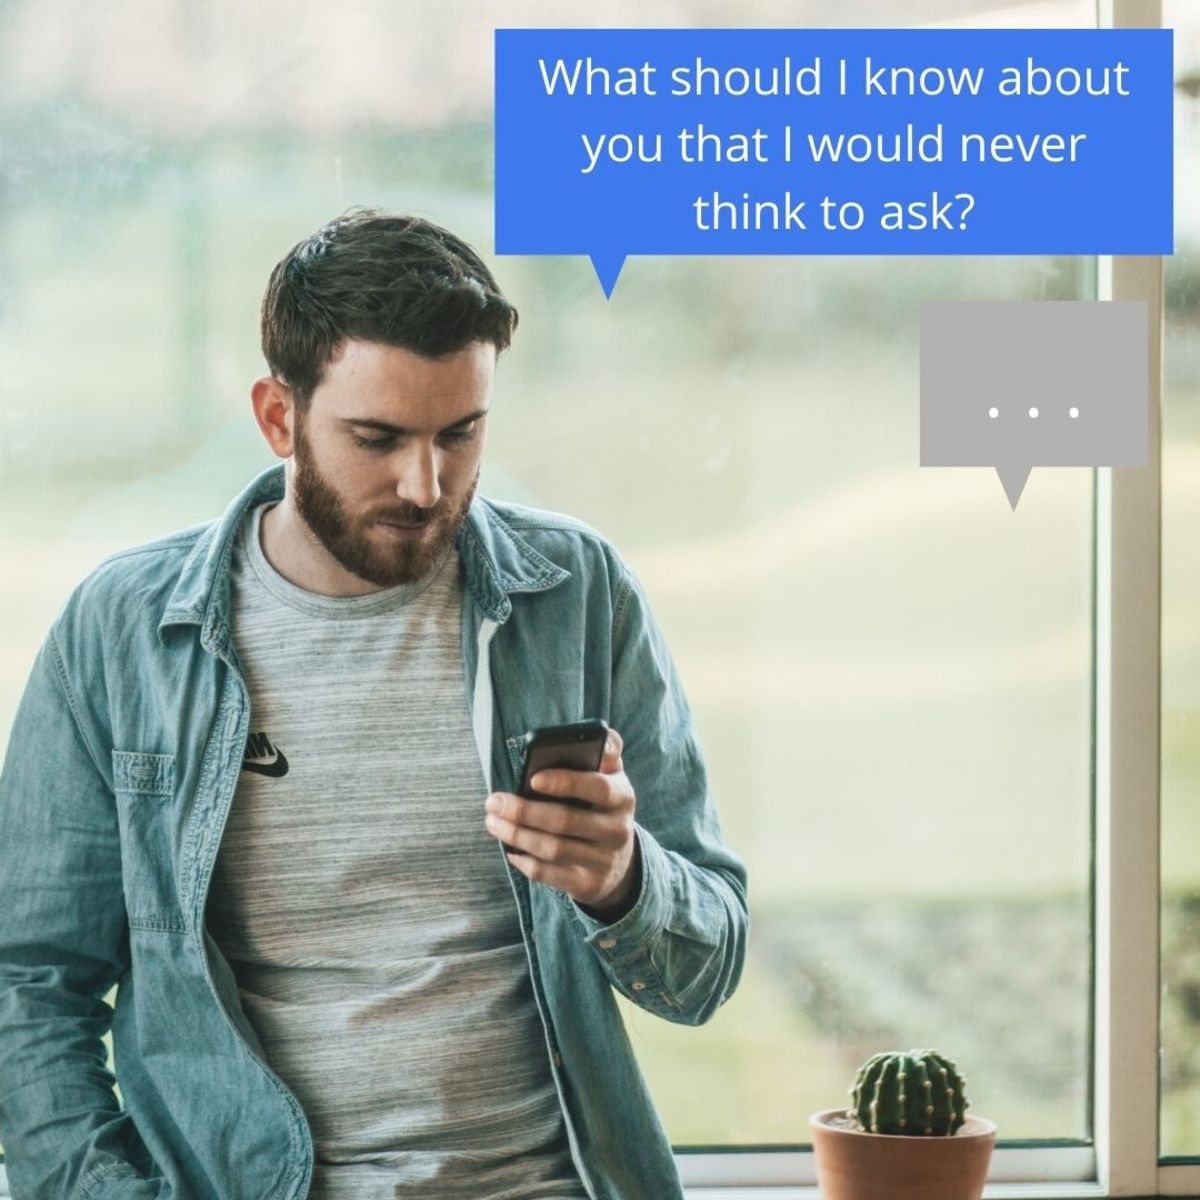 Get a response on Tinder by asking questions that make her think.